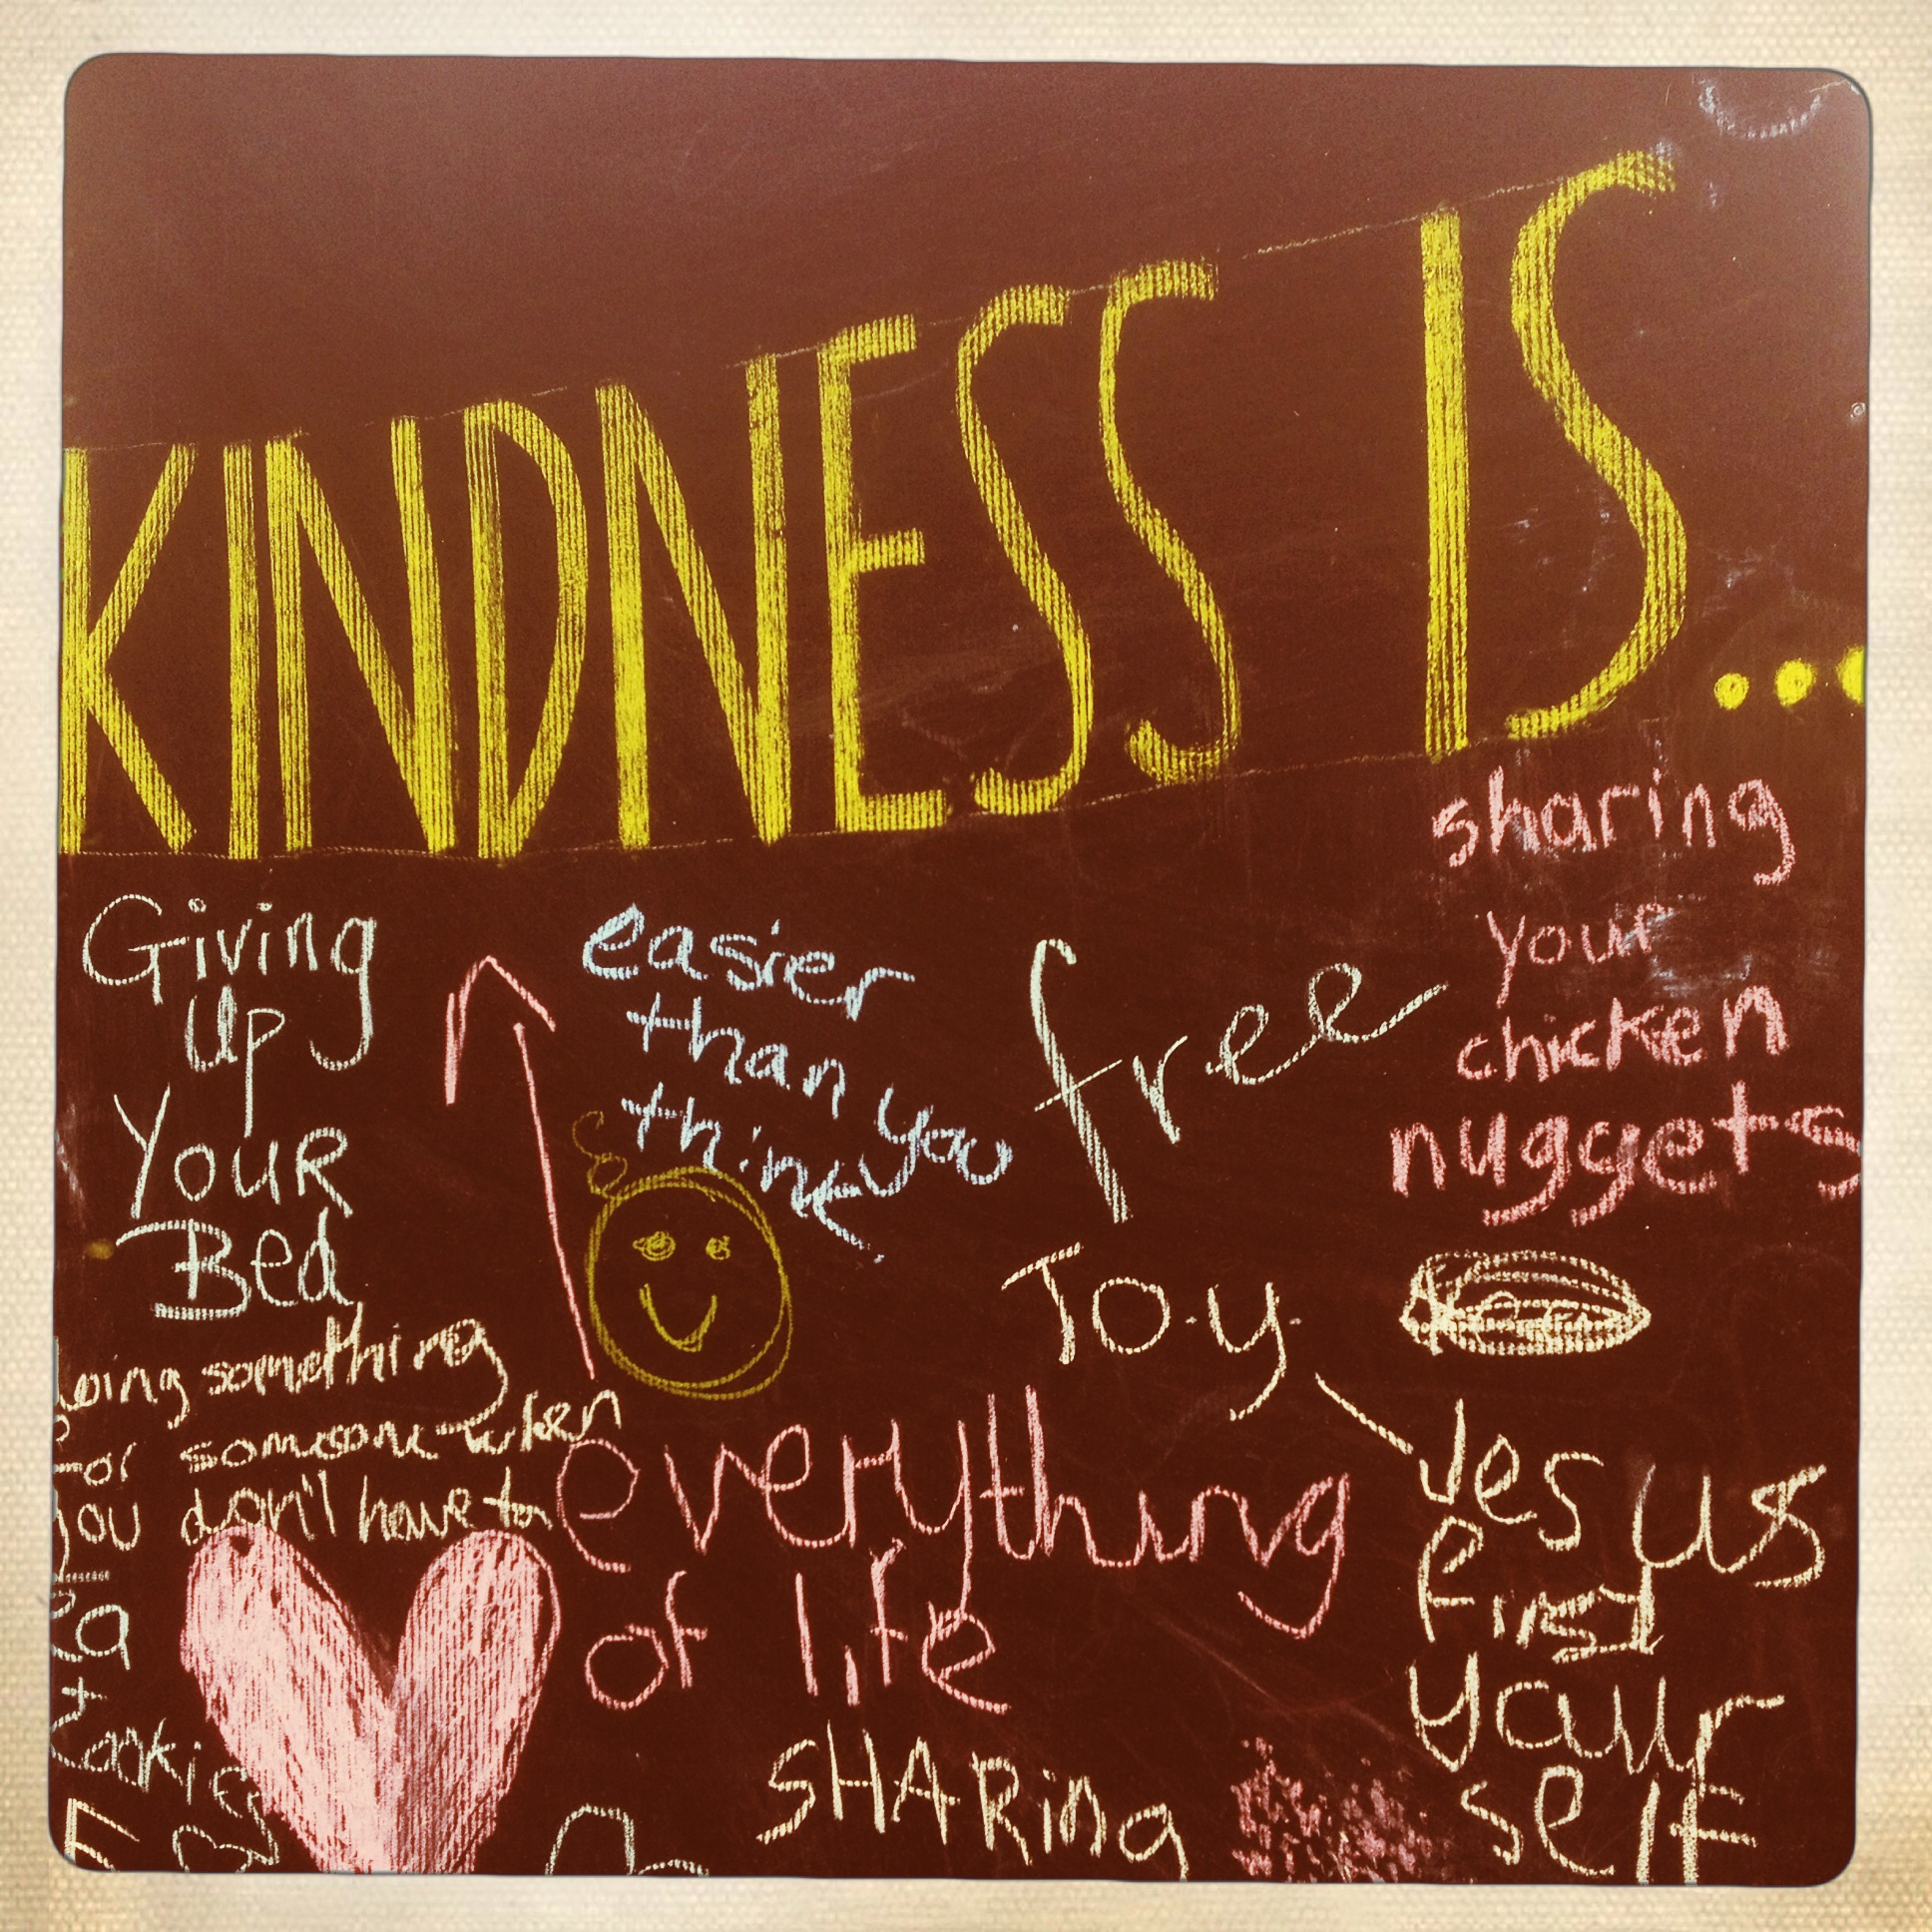 We set up three 8 ft blackboards and provided chalk for people to write and draw about their experiences of Kindness.